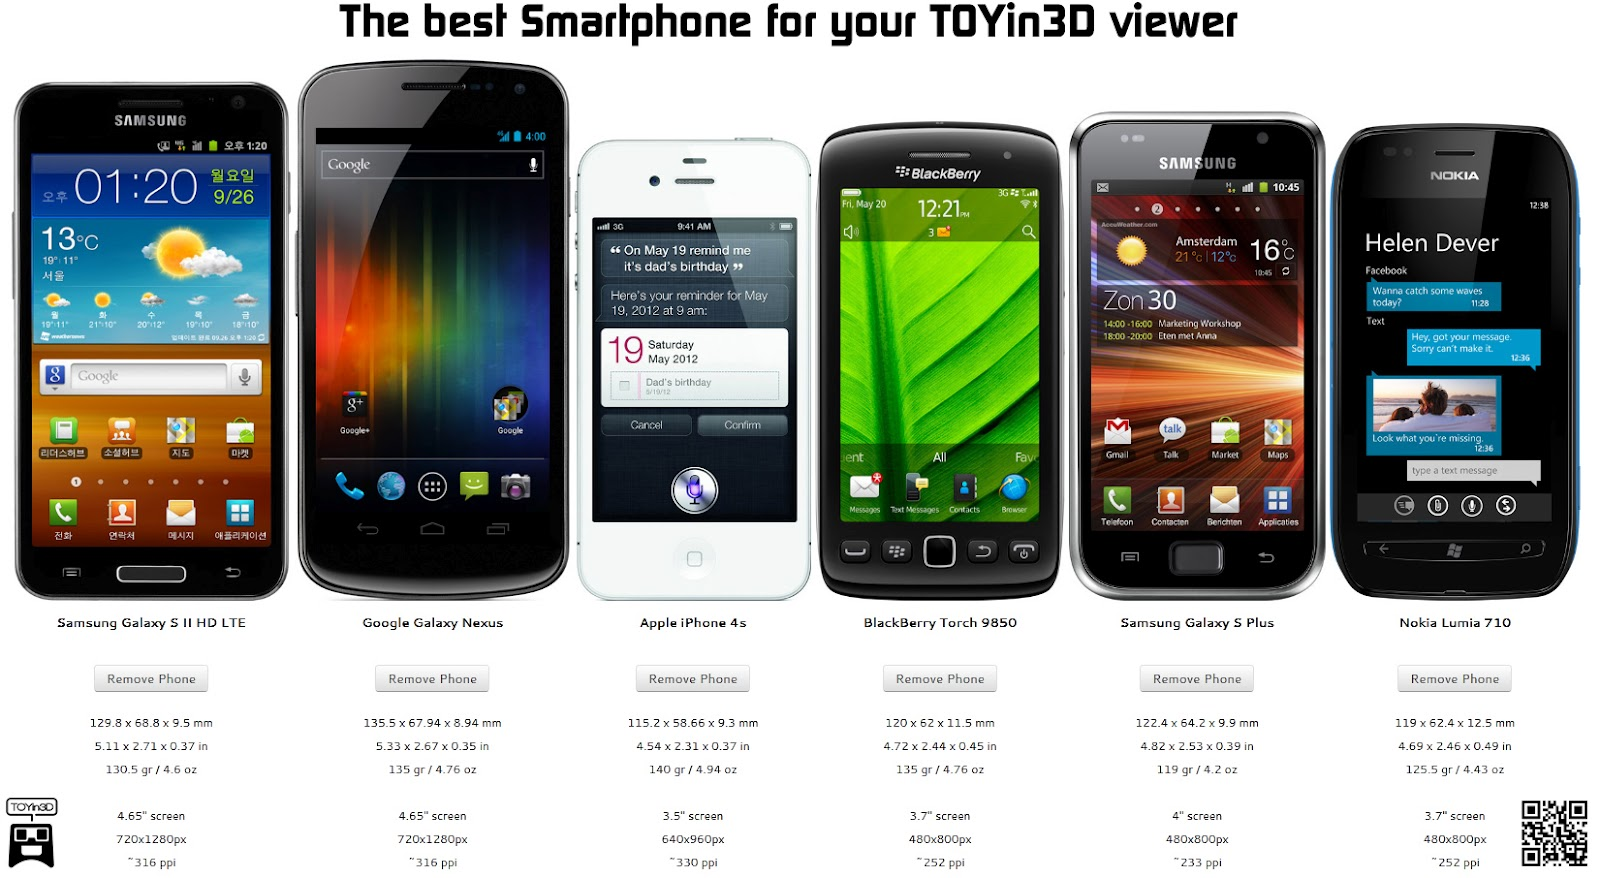 http://2.bp.blogspot.com/-5uRRguqqnuw/T2CC2YAGJQI/AAAAAAAACLc/zCvMLCG5YNc/s1600/The%20best%20Smartphone%20for%20your%20TOYin3D%20viewer.jpg